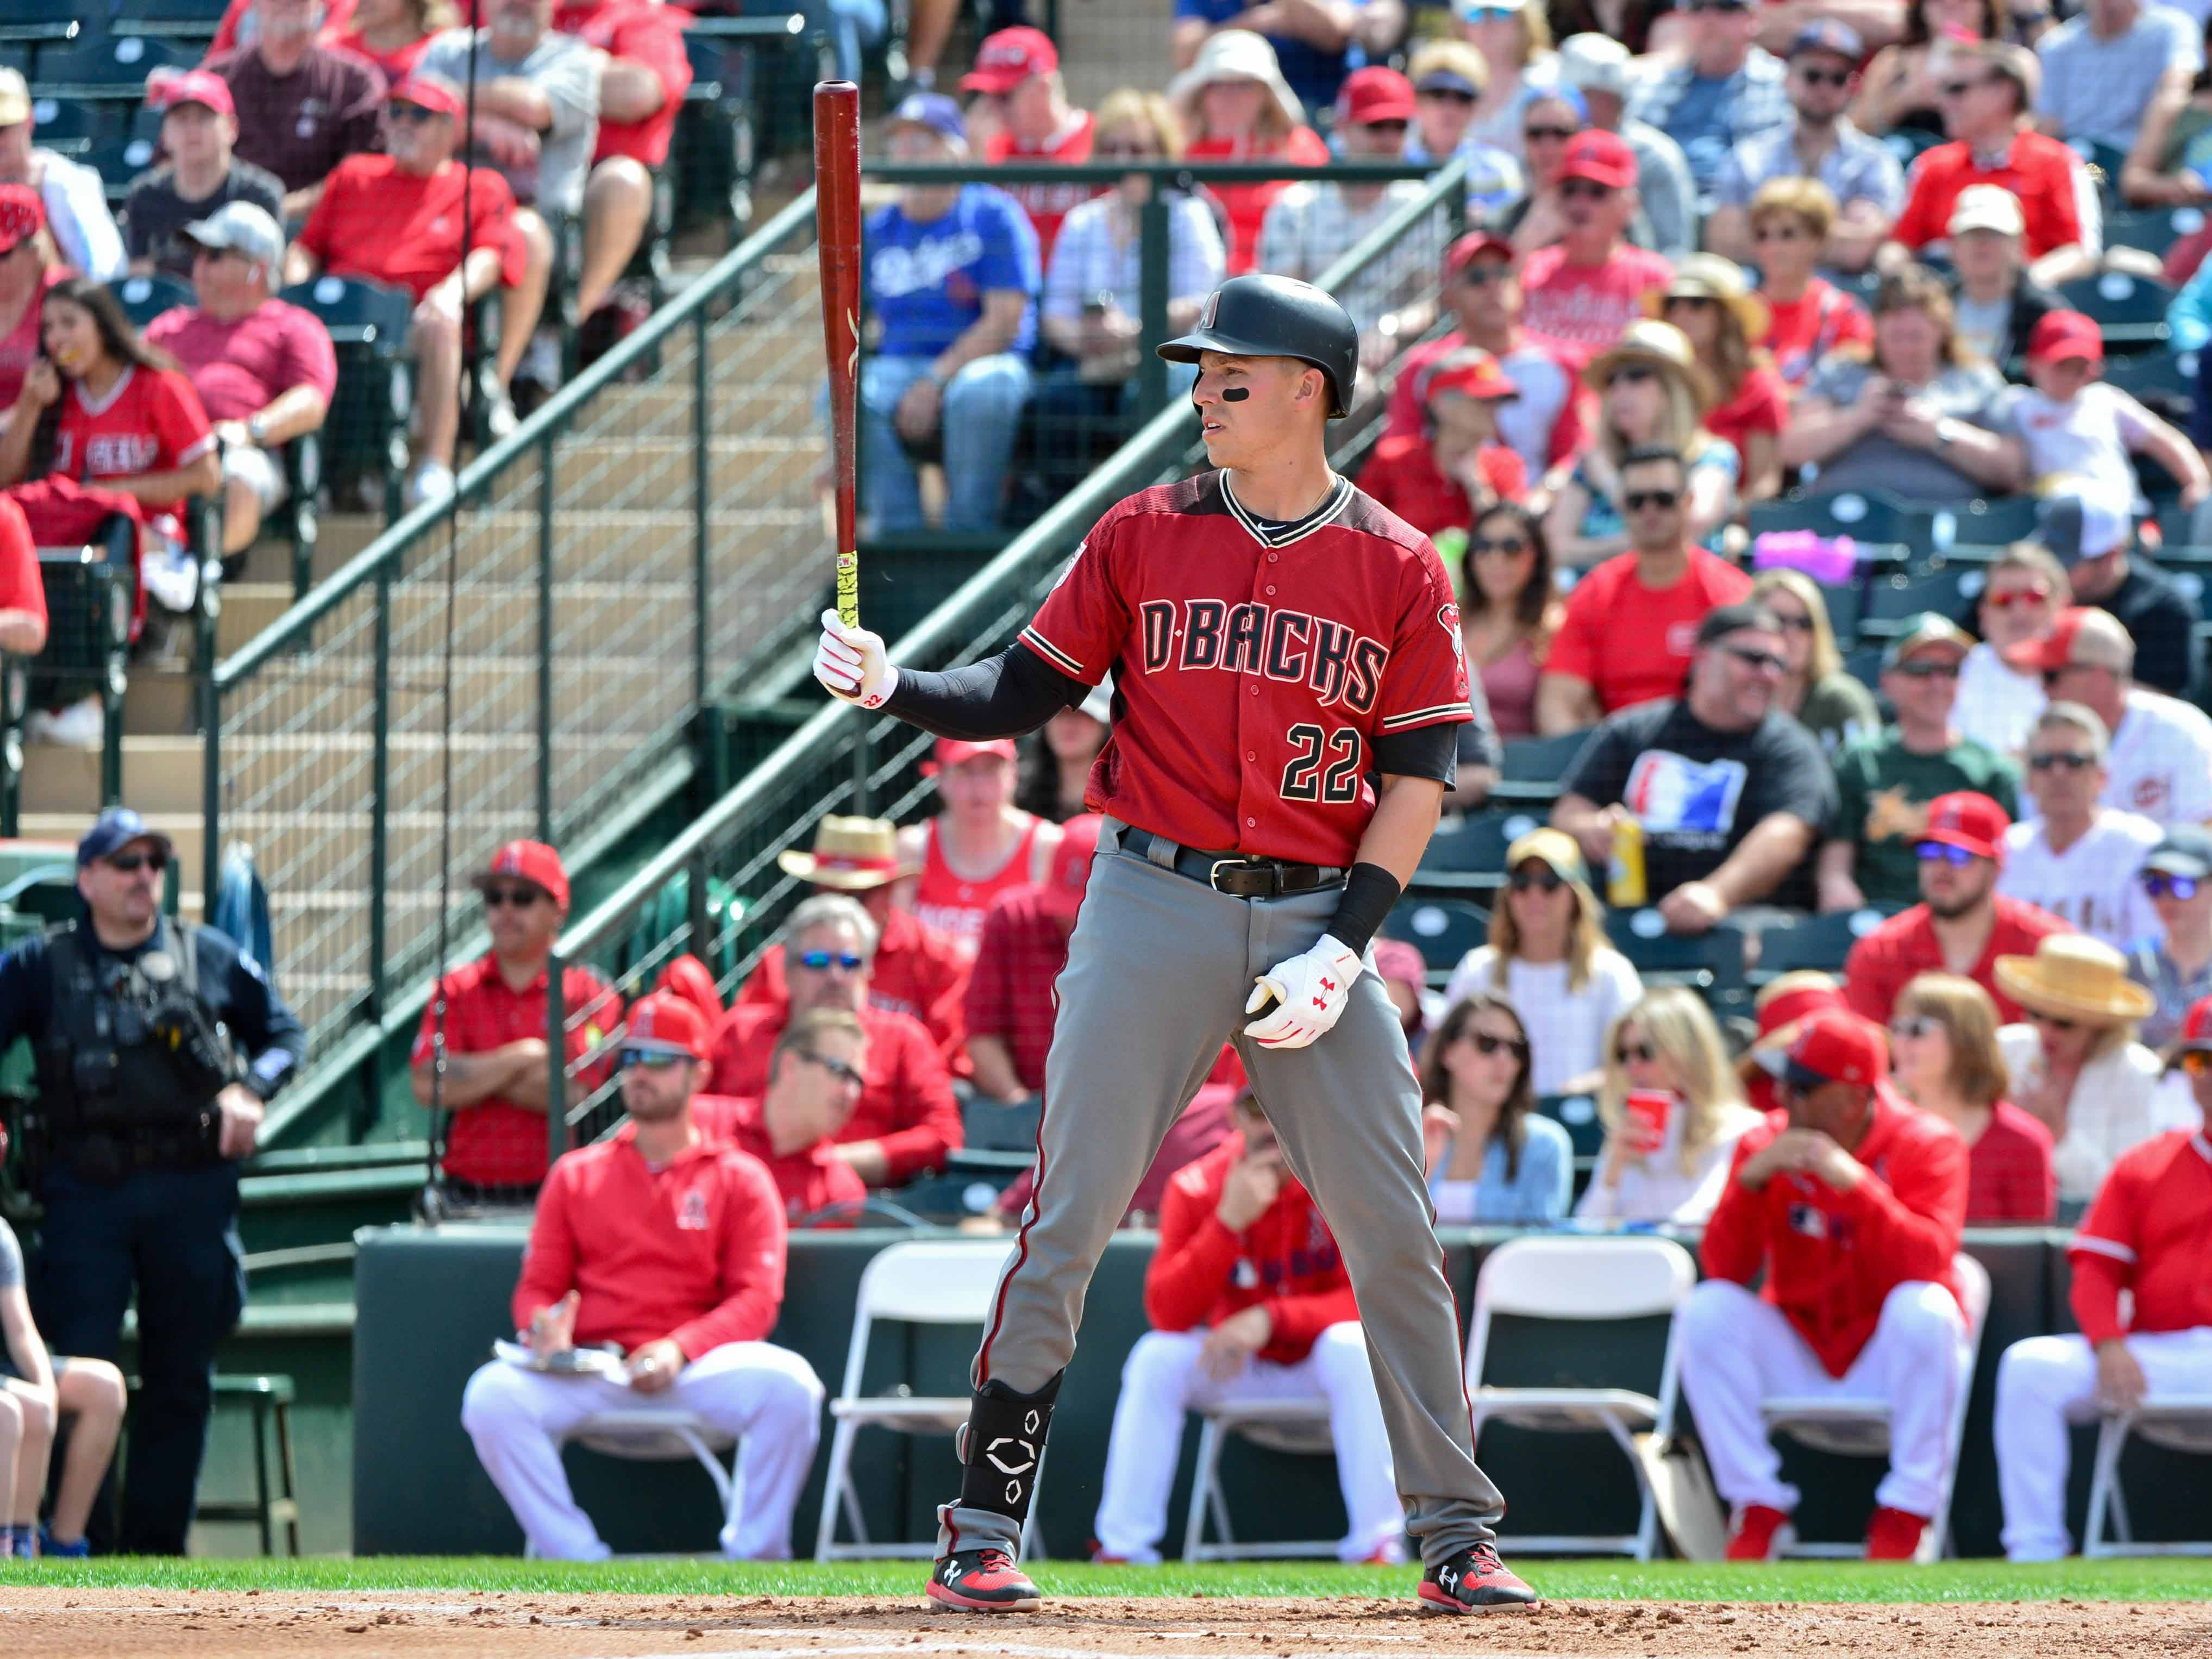 Mar 15, 2019; Tempe, AZ, USA; Arizona Diamondbacks third baseman Jake Lamb (22) at bat in the second inning against the Los Angeles Angels at Tempe Diablo Stadium. Mandatory Credit: Matt Kartozian-USA TODAY Sports